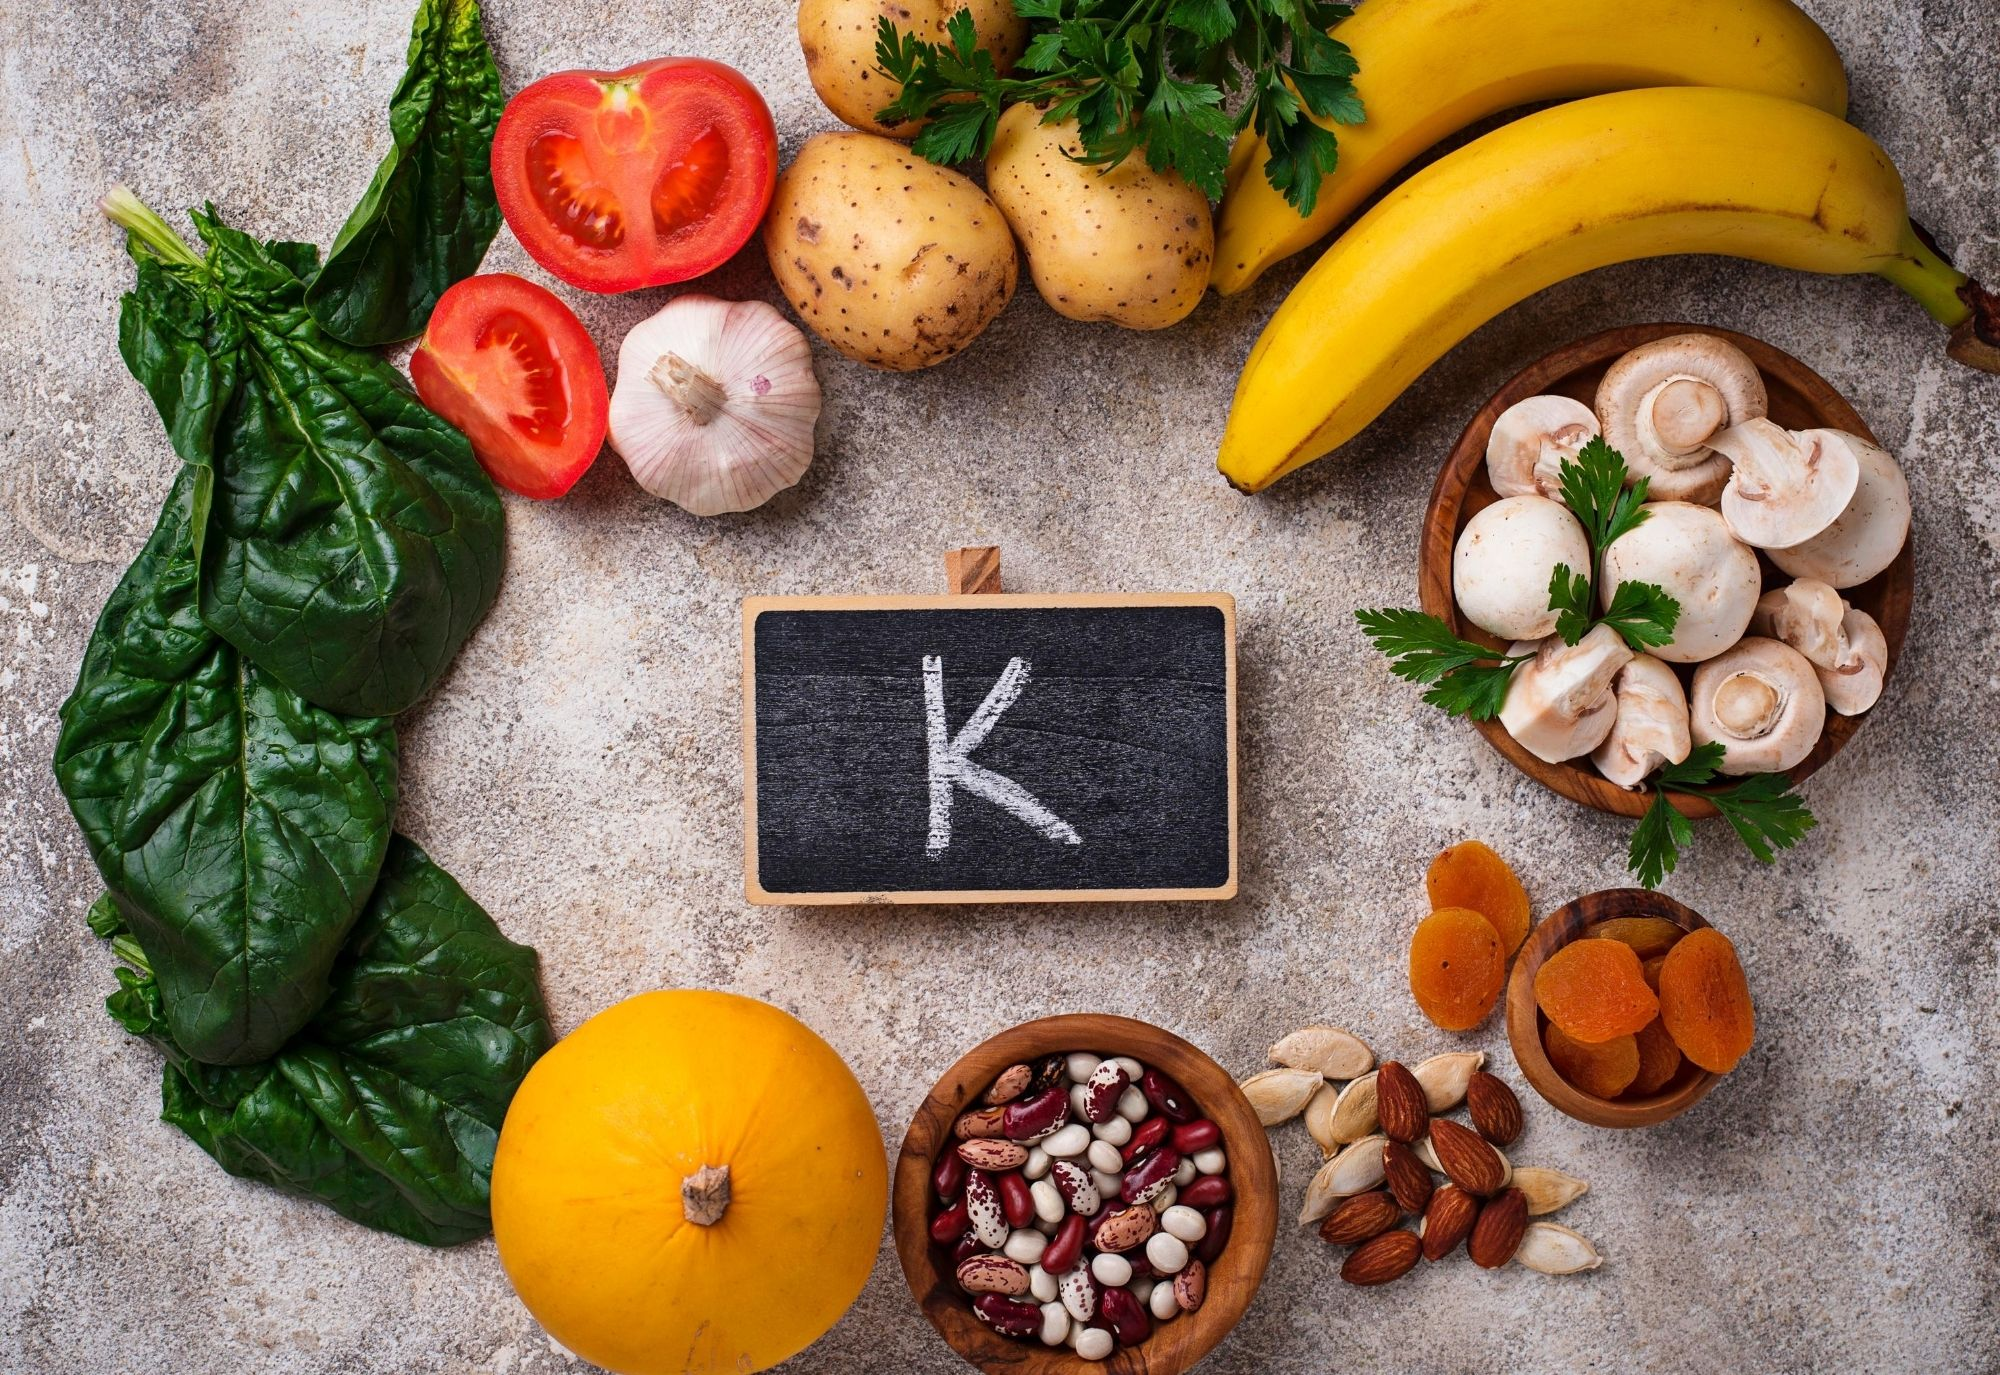 Vitamin K : Where to find it and how to use it?